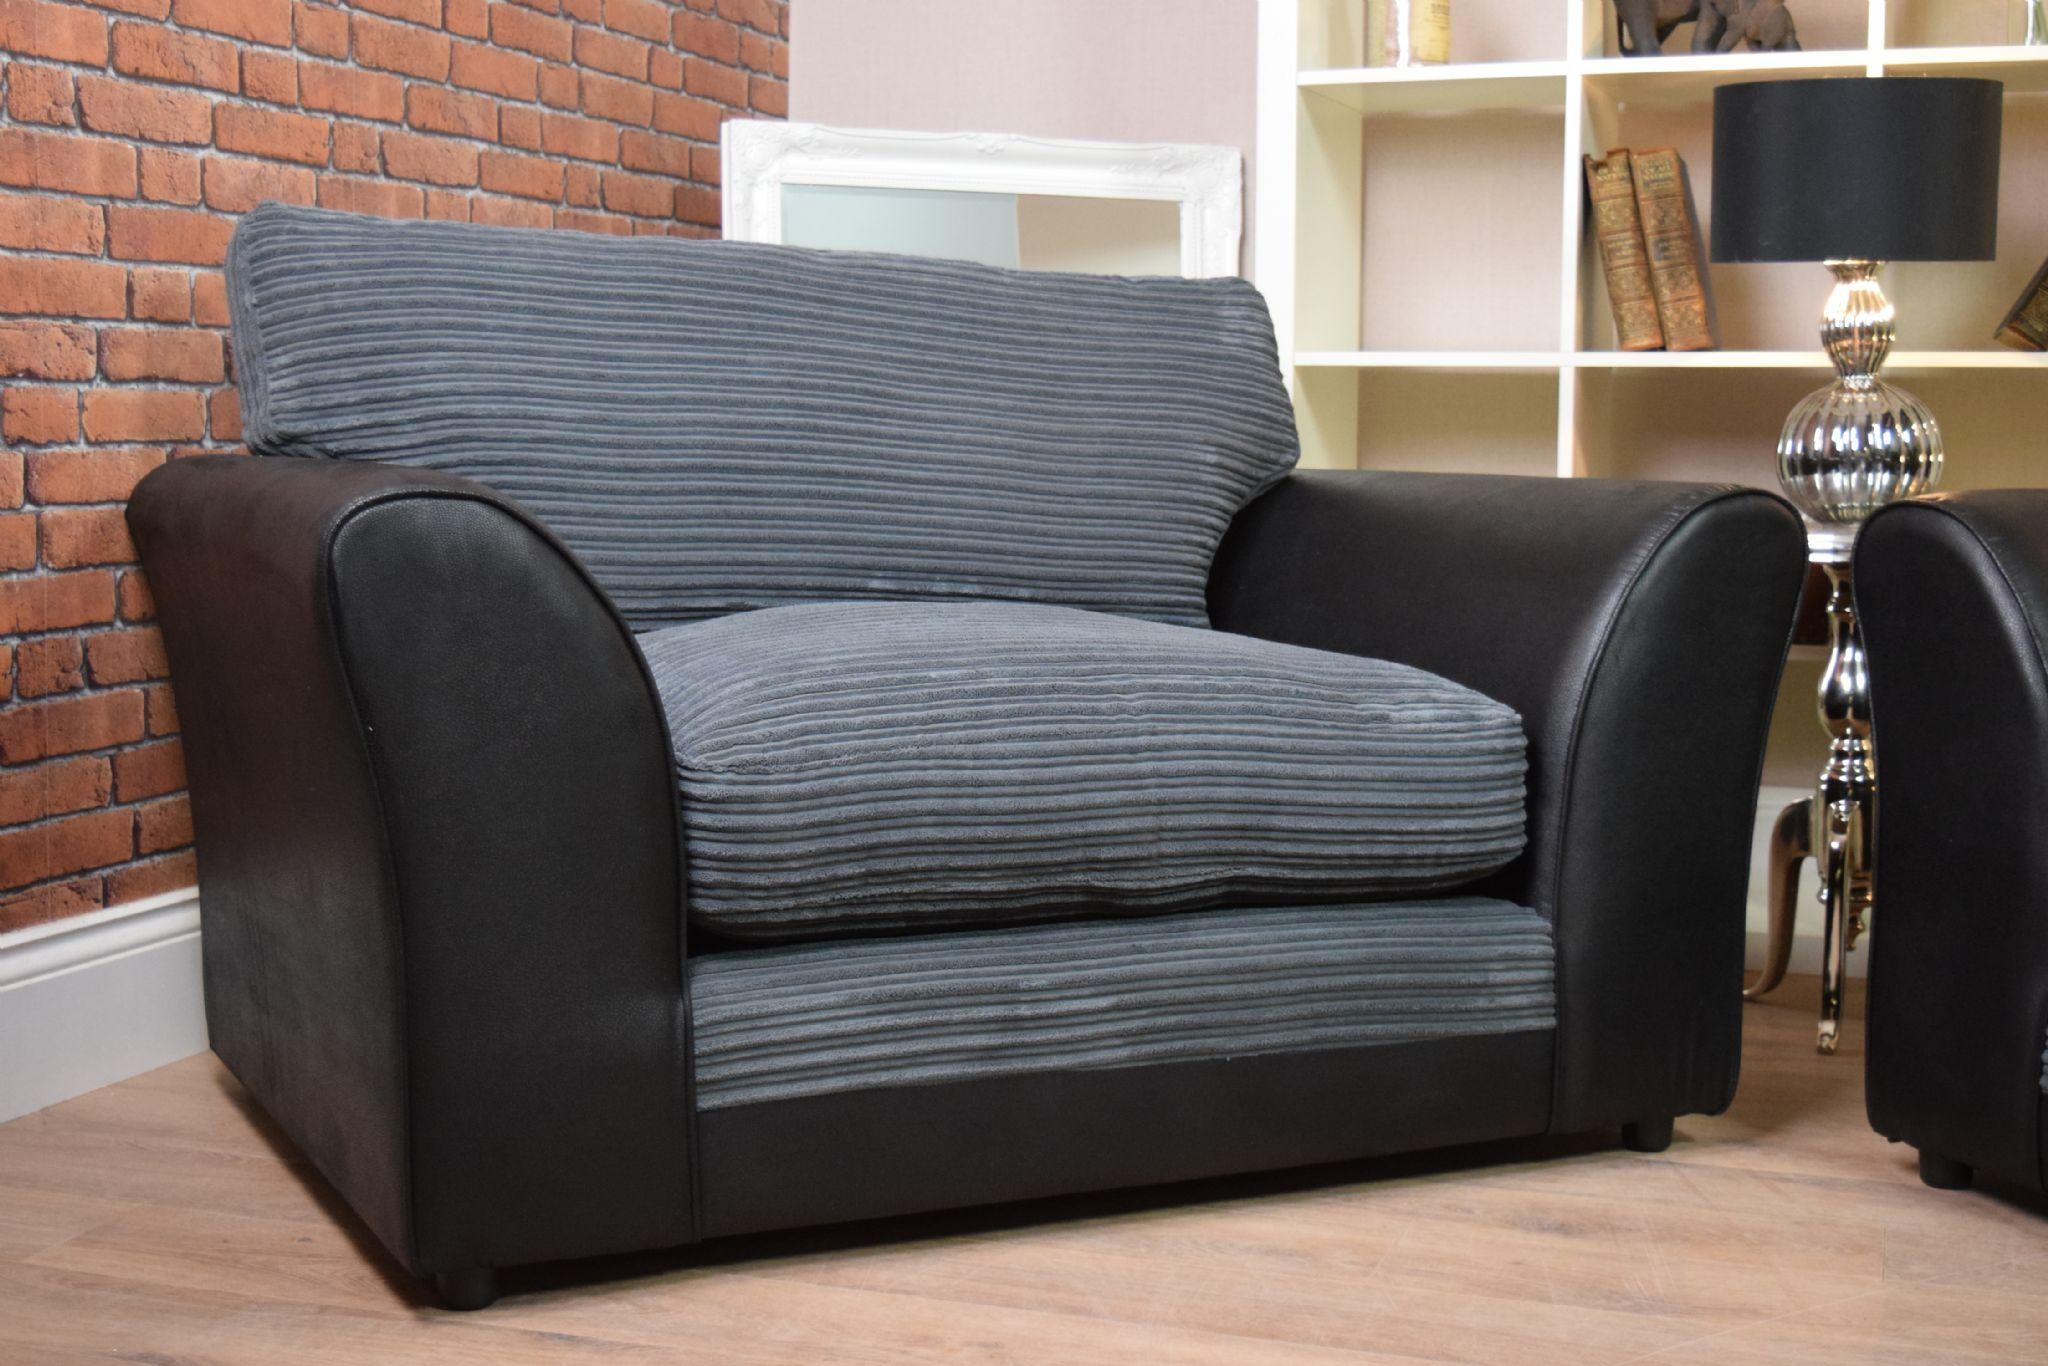 Set Harley Bailey 3 Seater Sofa Cuddle Chair Suite Set – Black Within 3 Seater Sofa And Cuddle Chairs (Image 6 of 20)